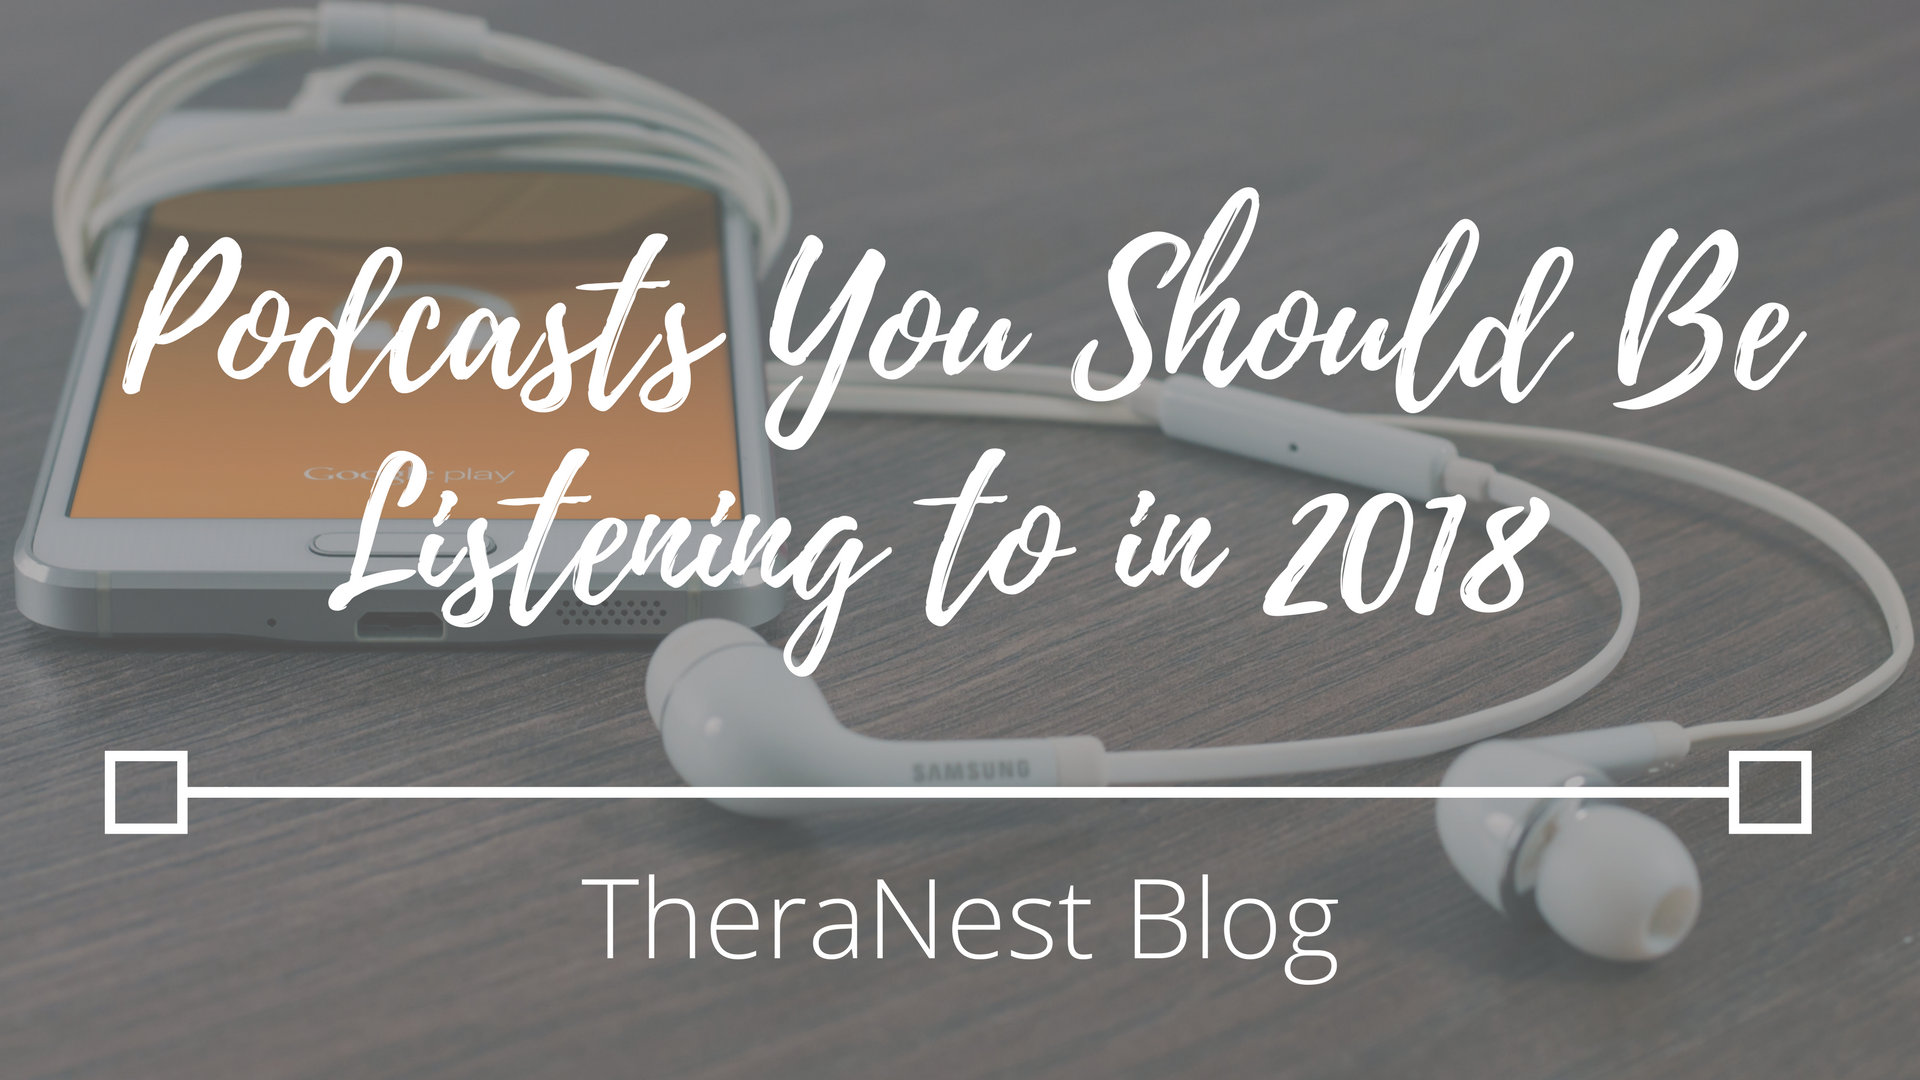 Therapy Podcasts You Should Be Listening To In 2018 Theranest Blog